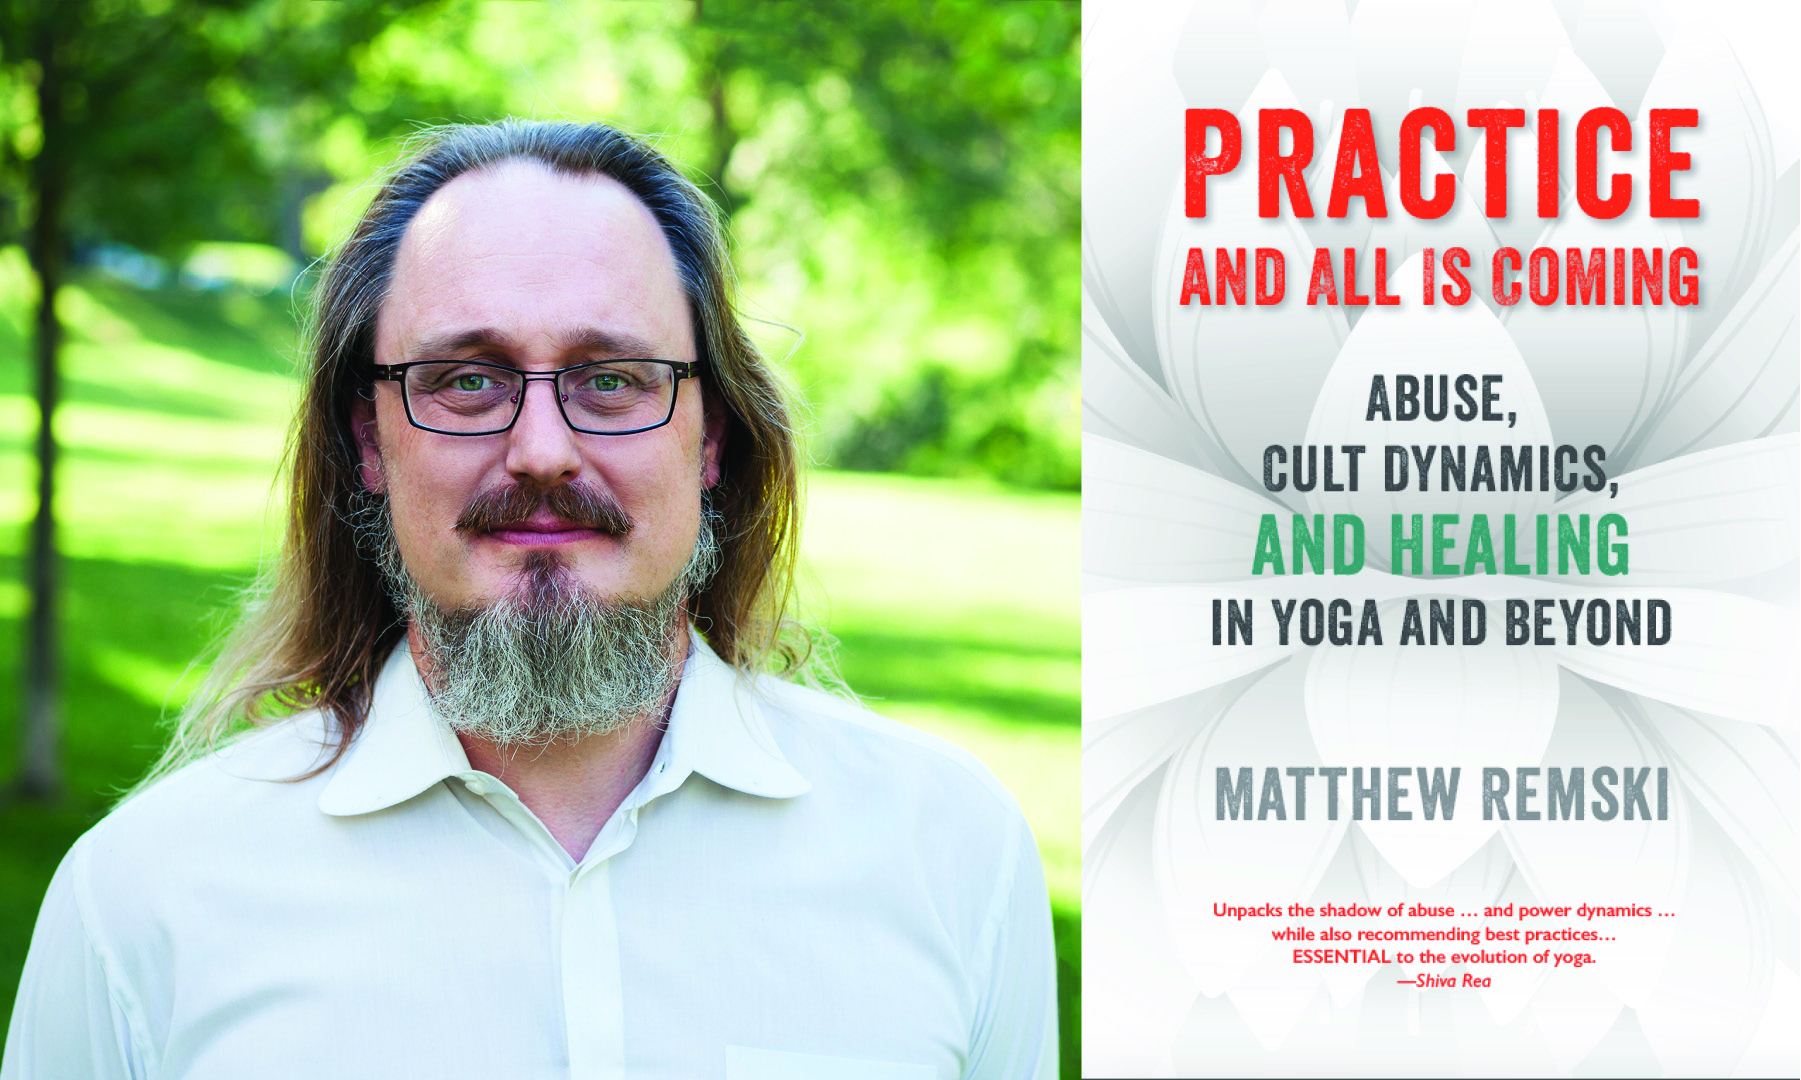 Cult Dynamics and Healing in Yoga & Beyond with Matthew Remski